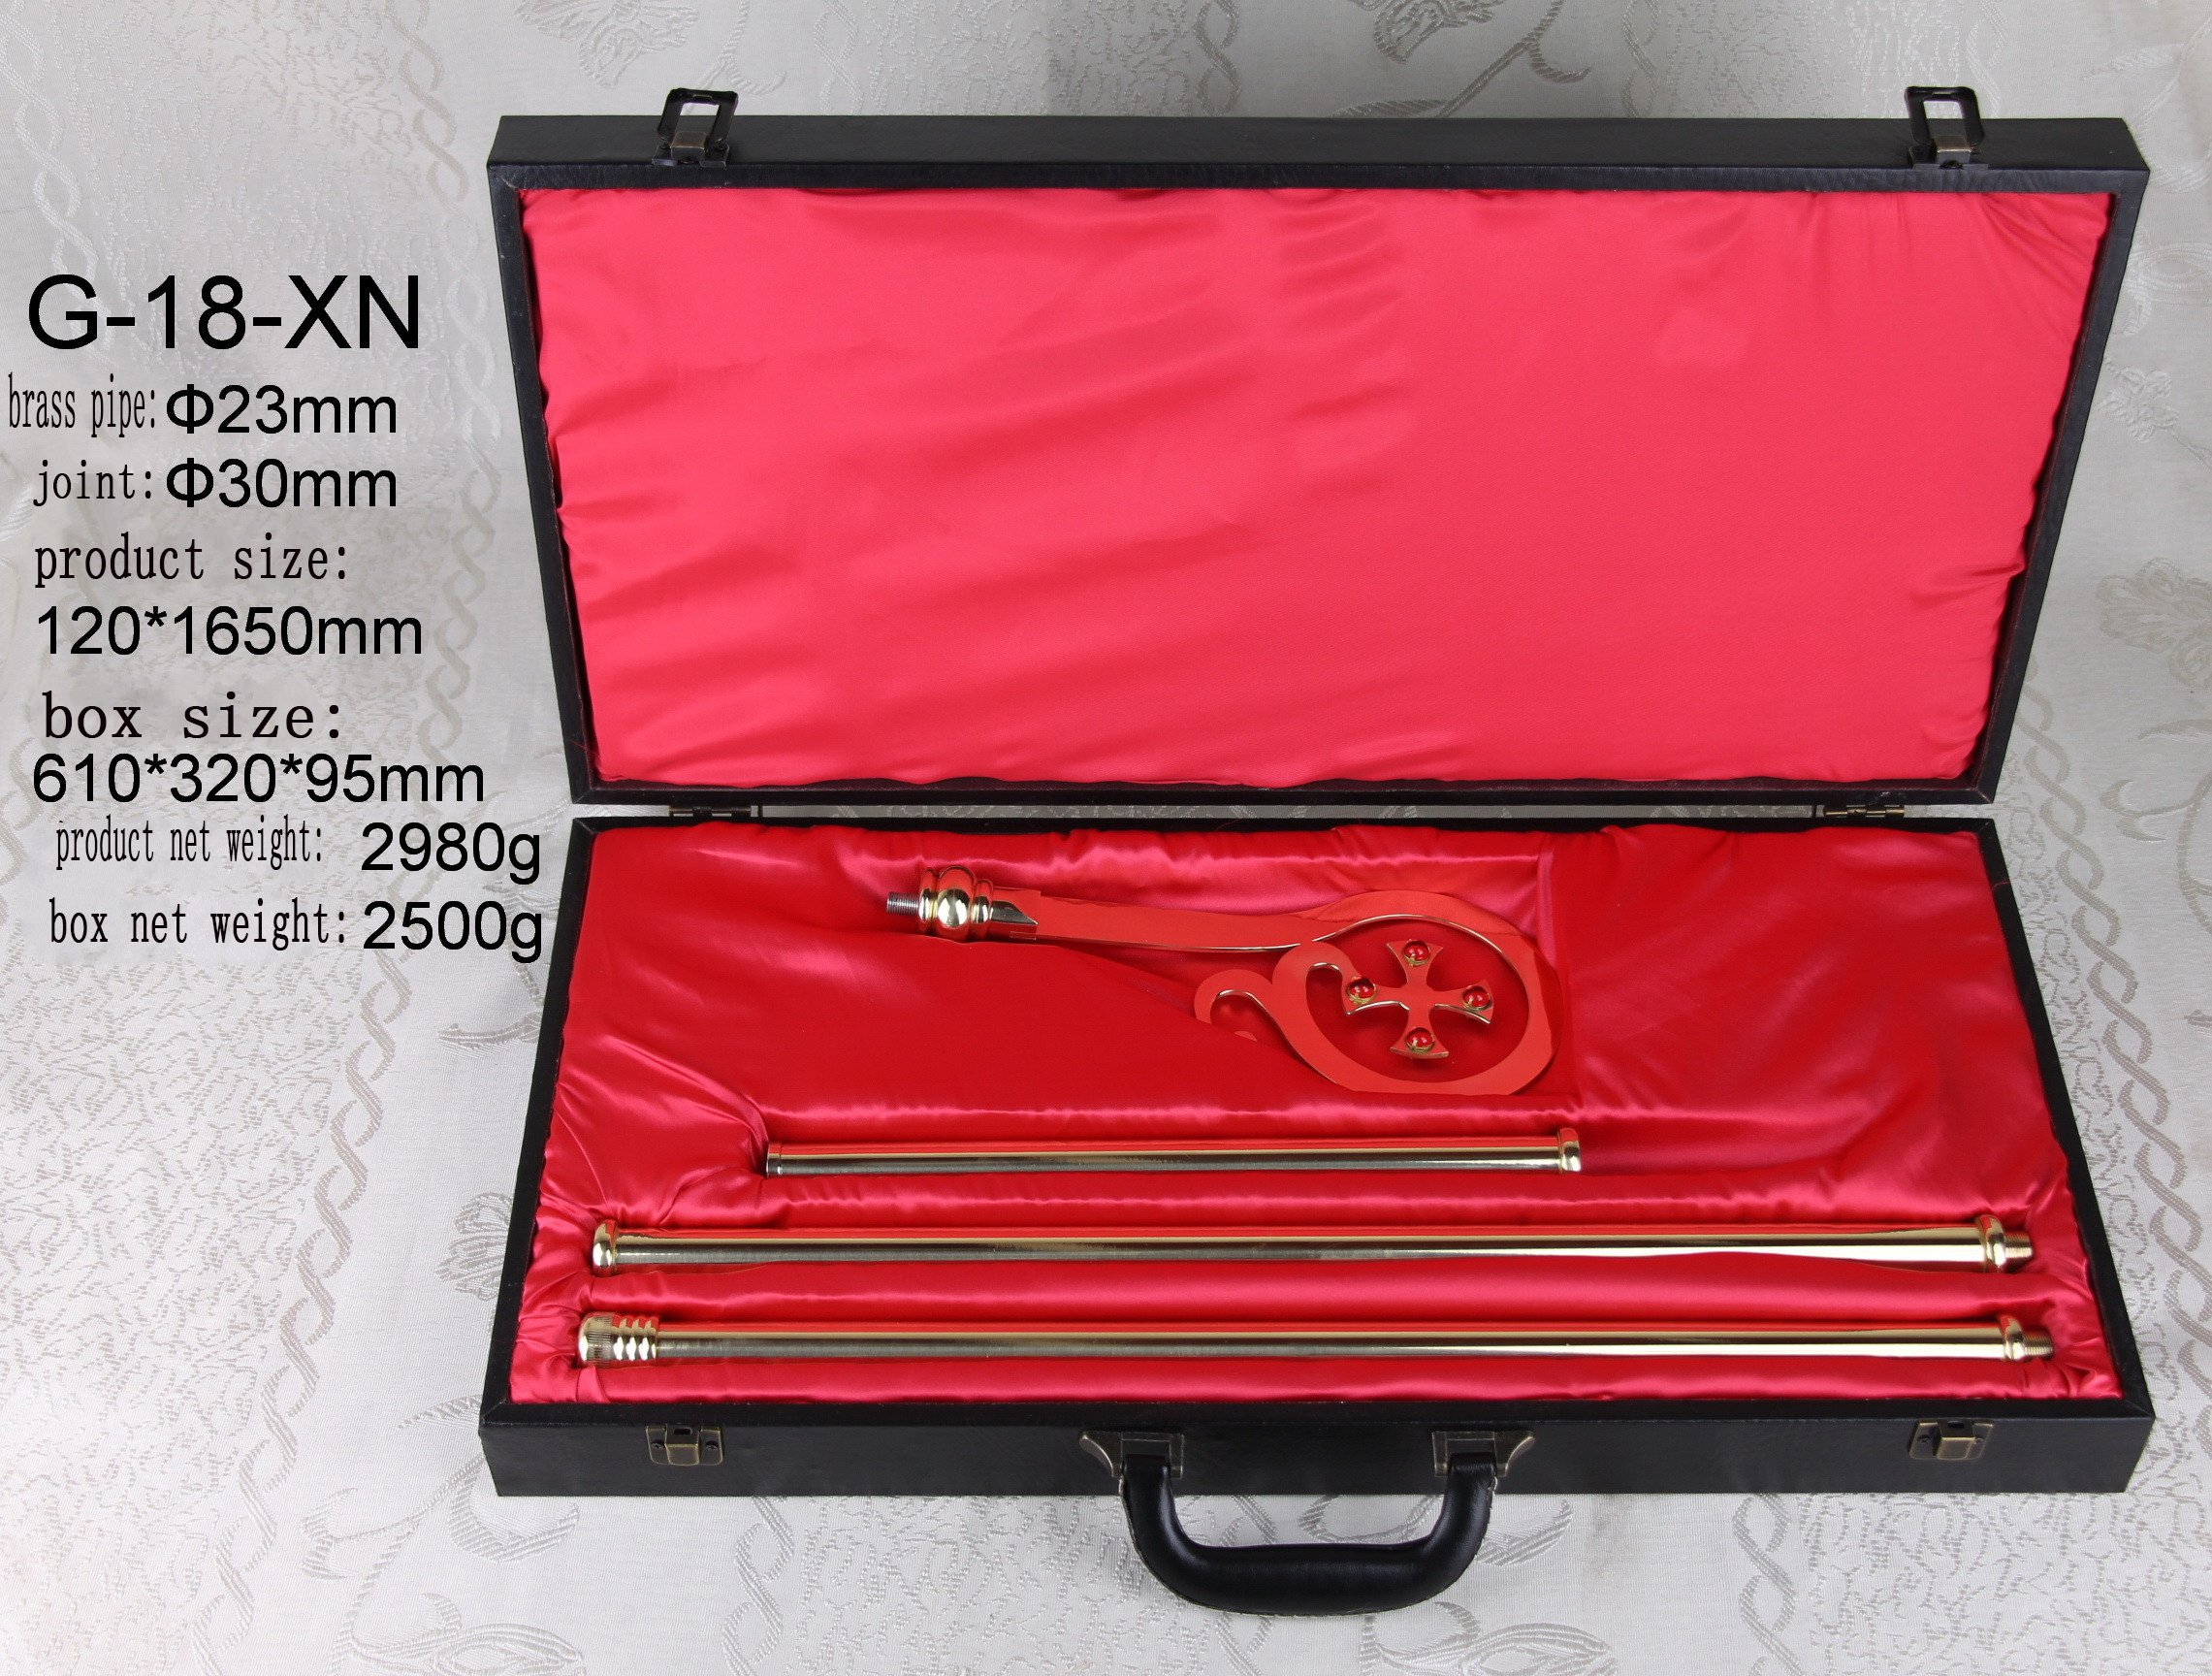 65'' Bishop's Crosier Staff in Case Brass High Polished G-18-XN. Our company have 48 kinds of crozier for your choice.